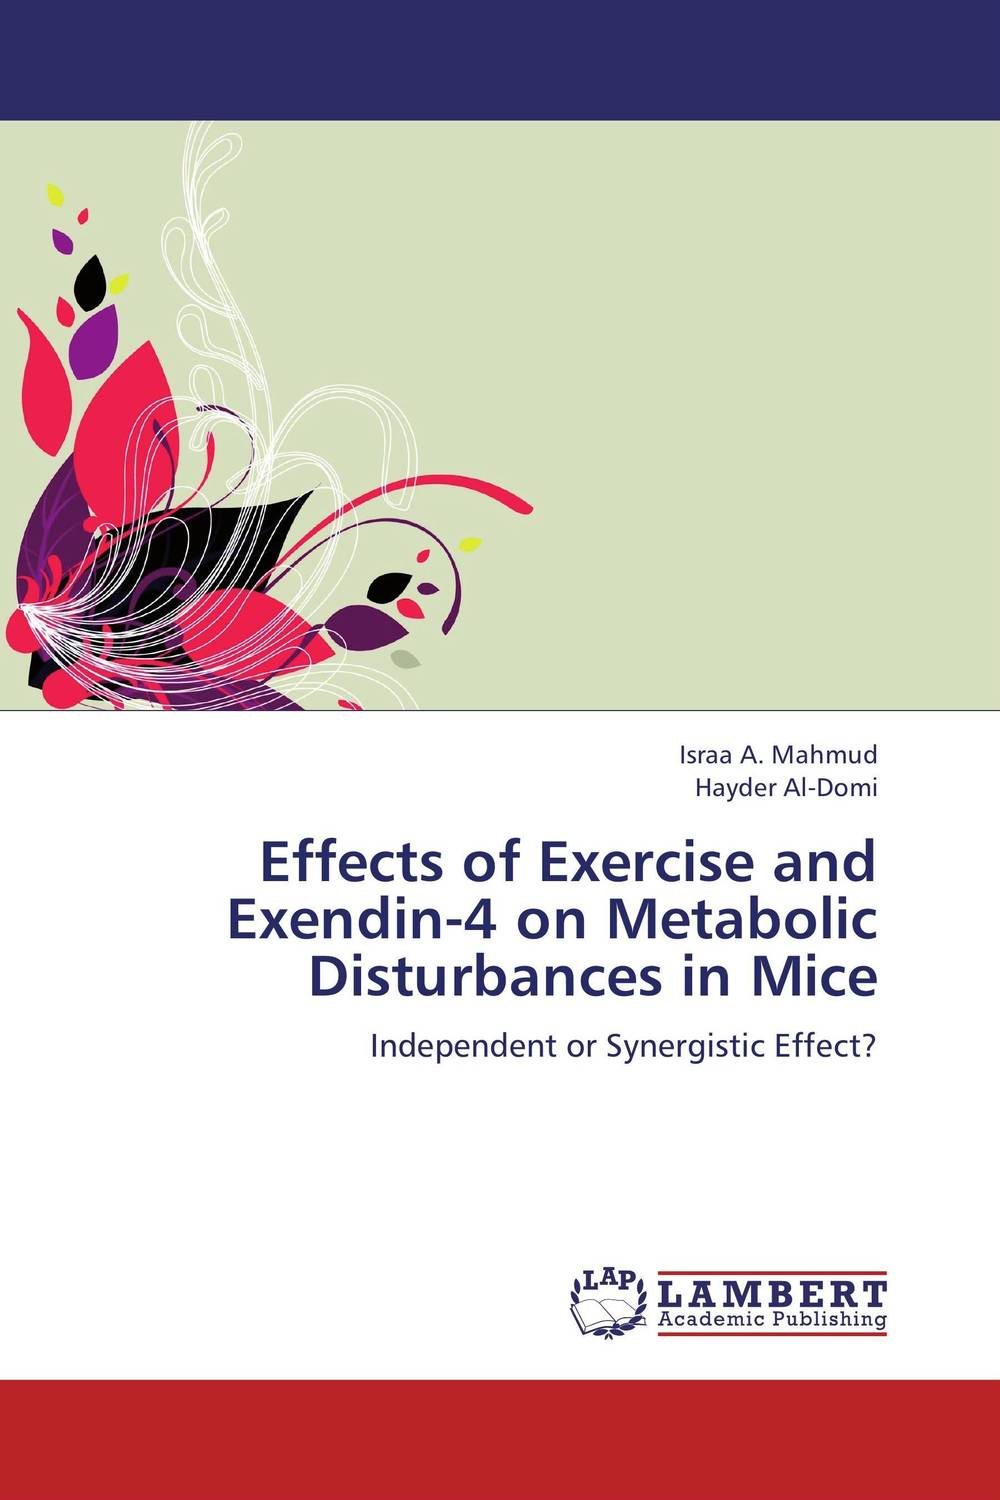 Effects of Exercise and Exendin-4 on Metabolic Disturbances in Mice exercise effects on morphine